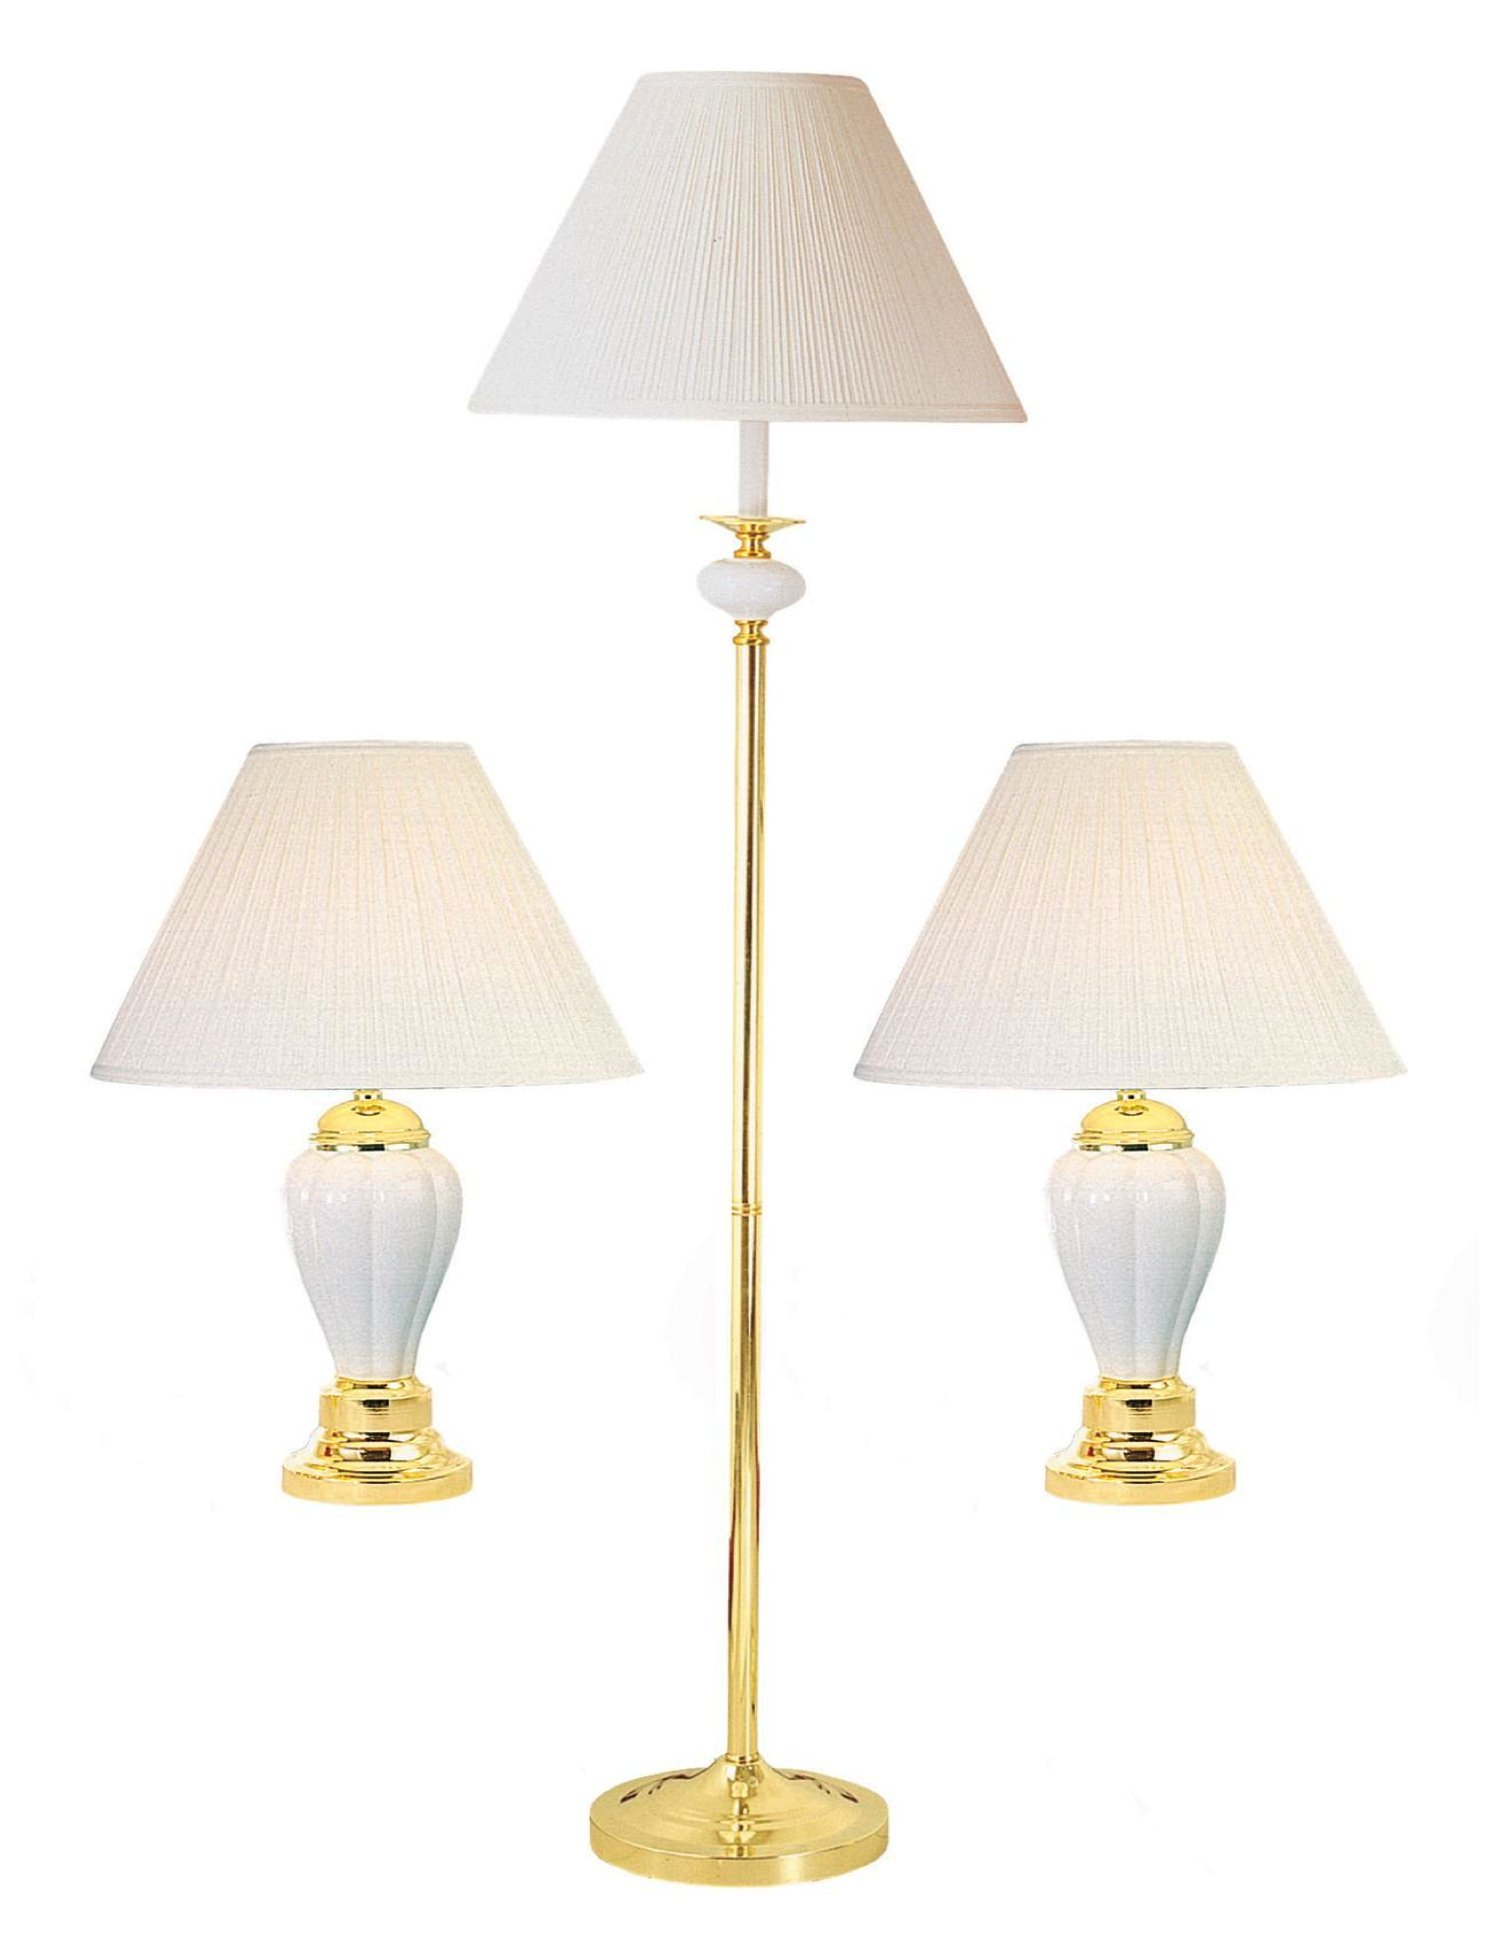 Ore International K-4101IV-31 Ceramic/Brass Table Plus Floor Lamp, Ivory, Set of 3